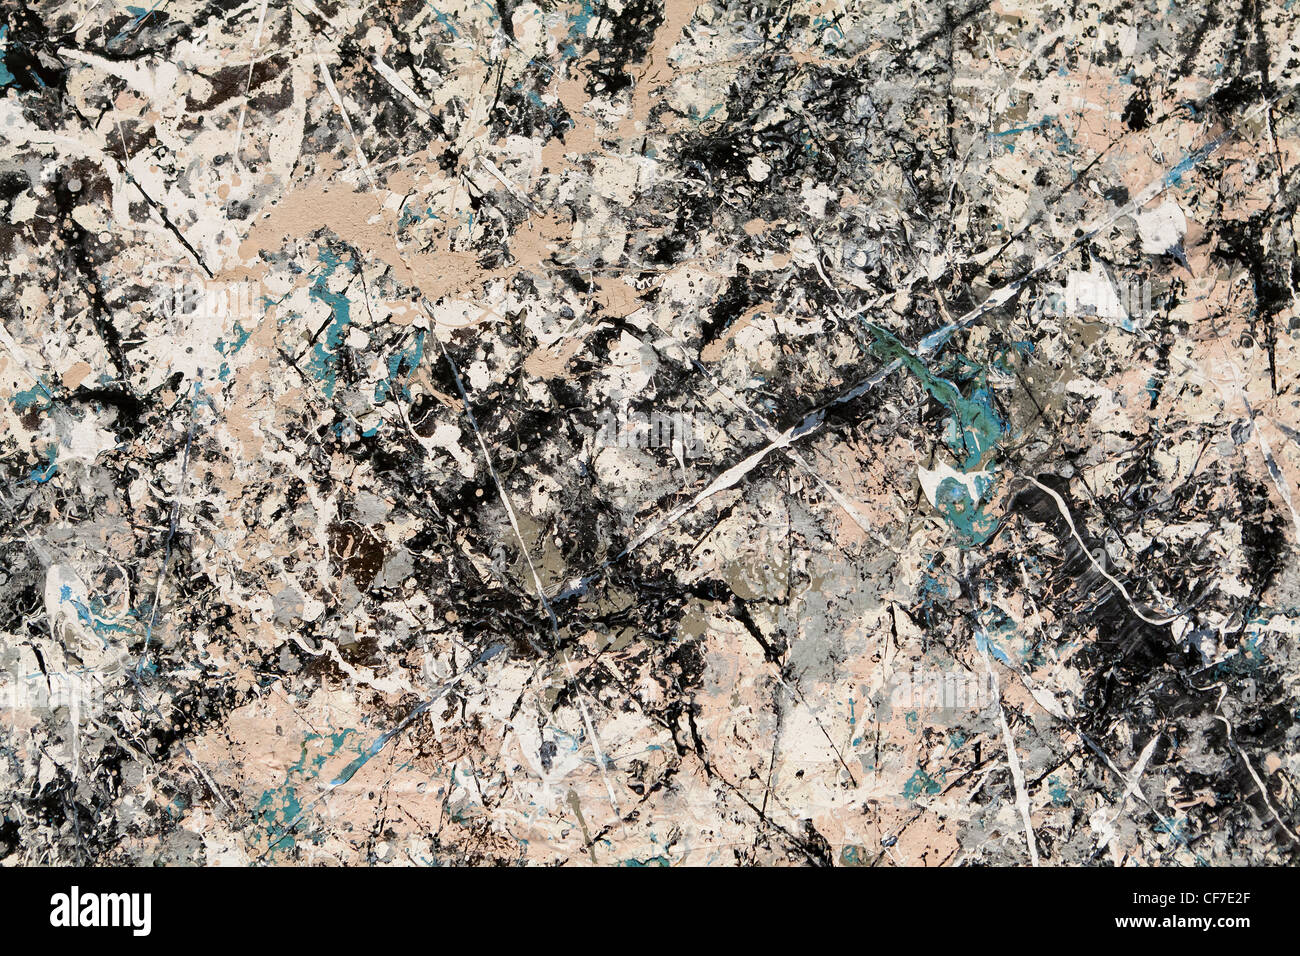 jackson pollocks lavander mist essay Also on view are paintings and works on paper by pollock from the gallery s collection, including number 1, 1950 (lavender mist) by jackson pollock.